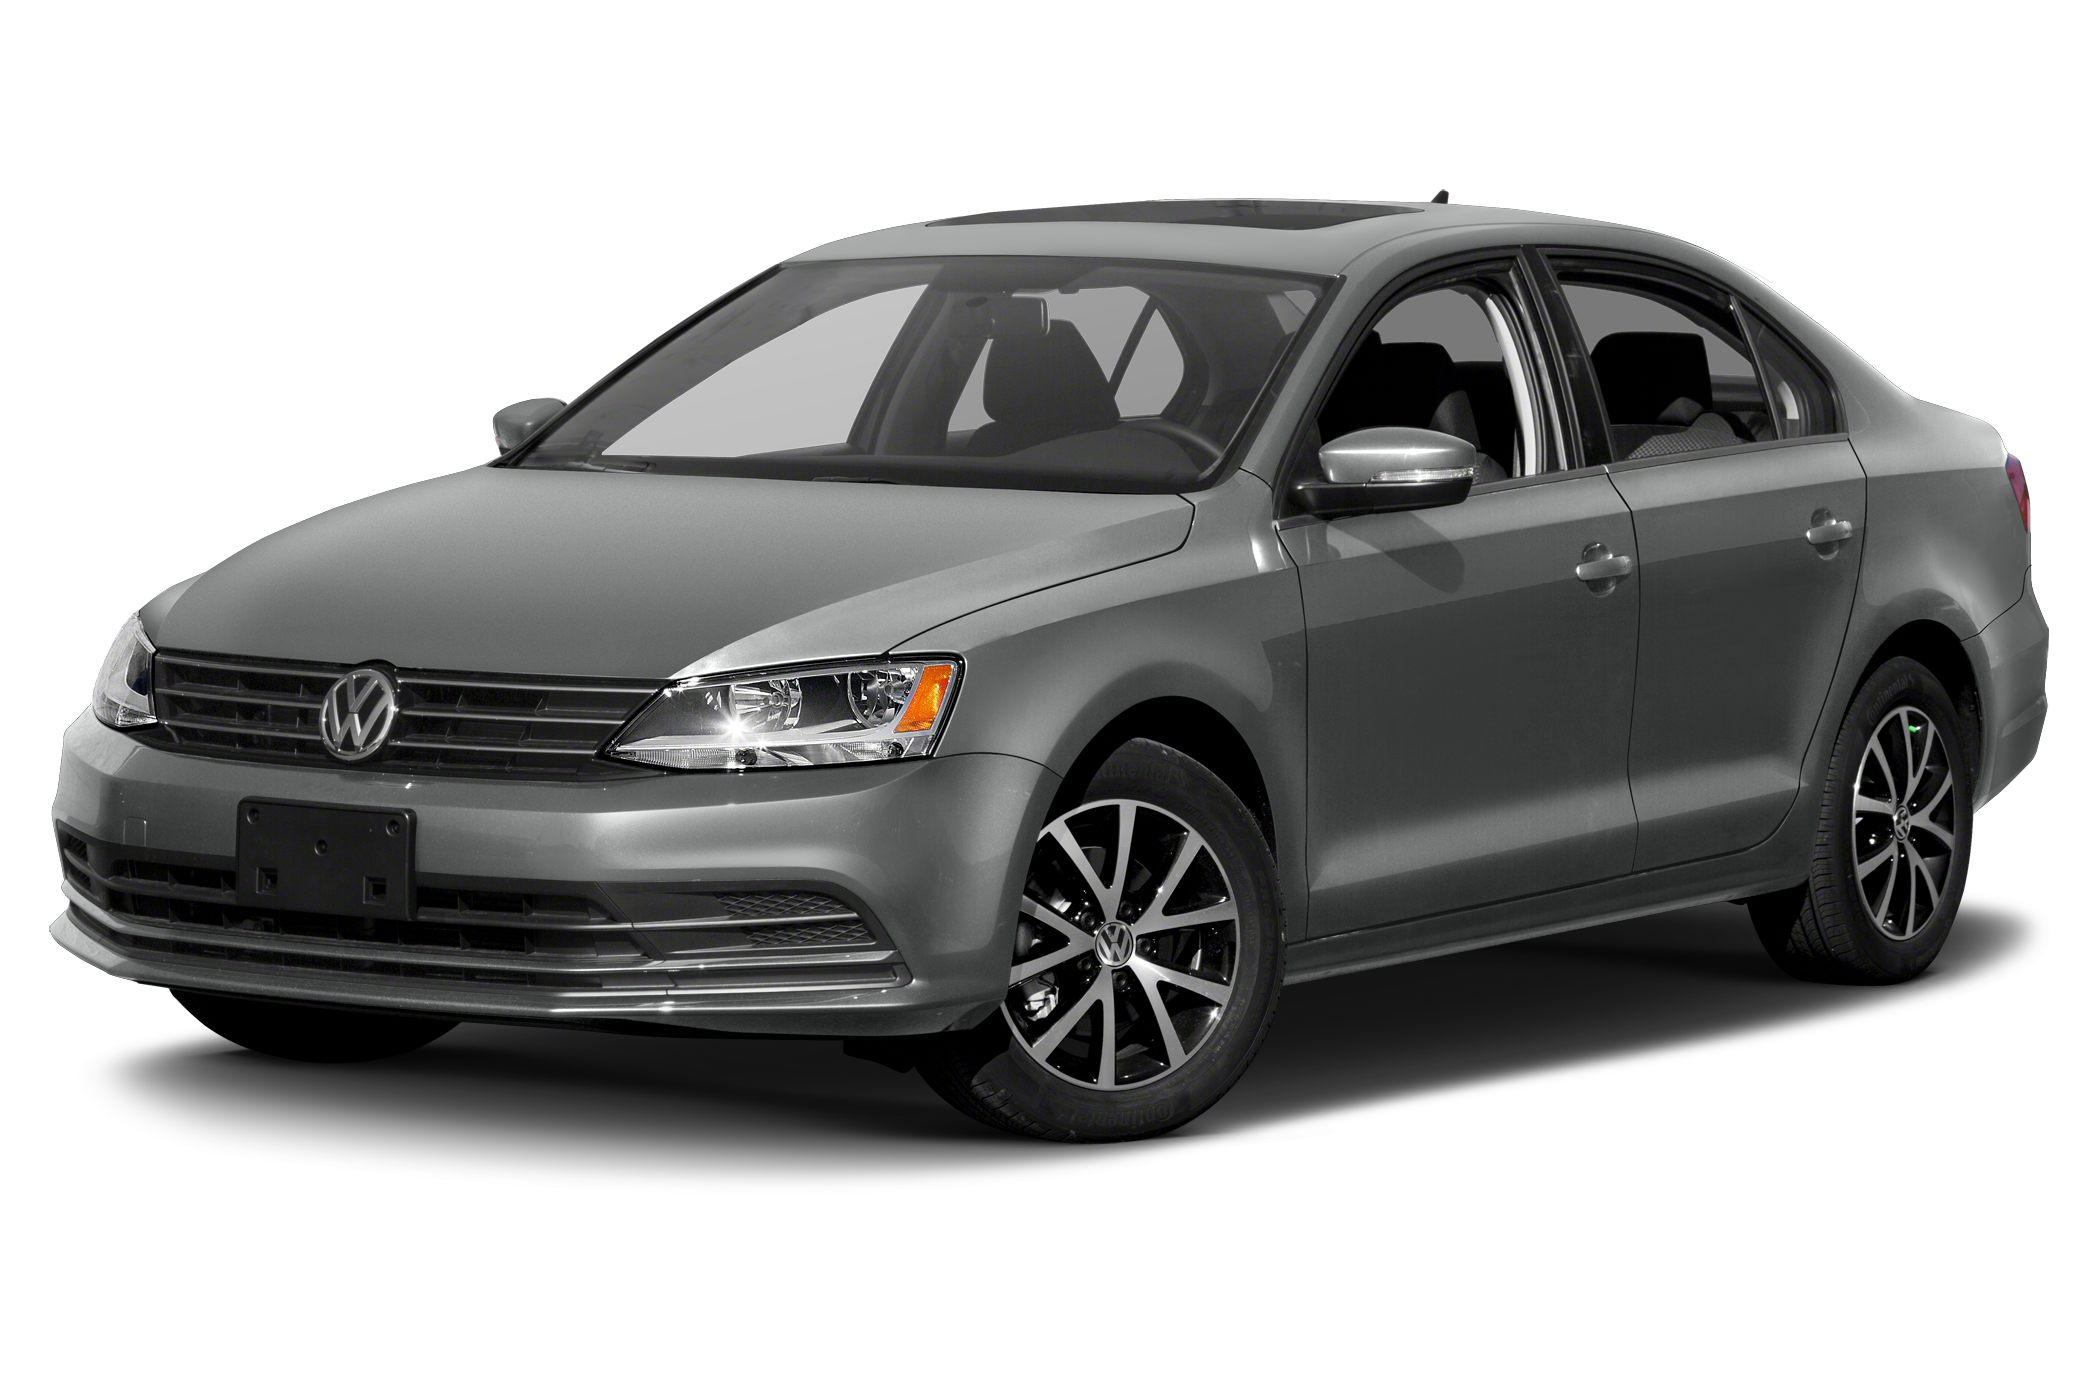 2015 Volkswagen Jetta 2.0L TDI SEL Sedan for sale in Chico for $29,000 with 2 miles.